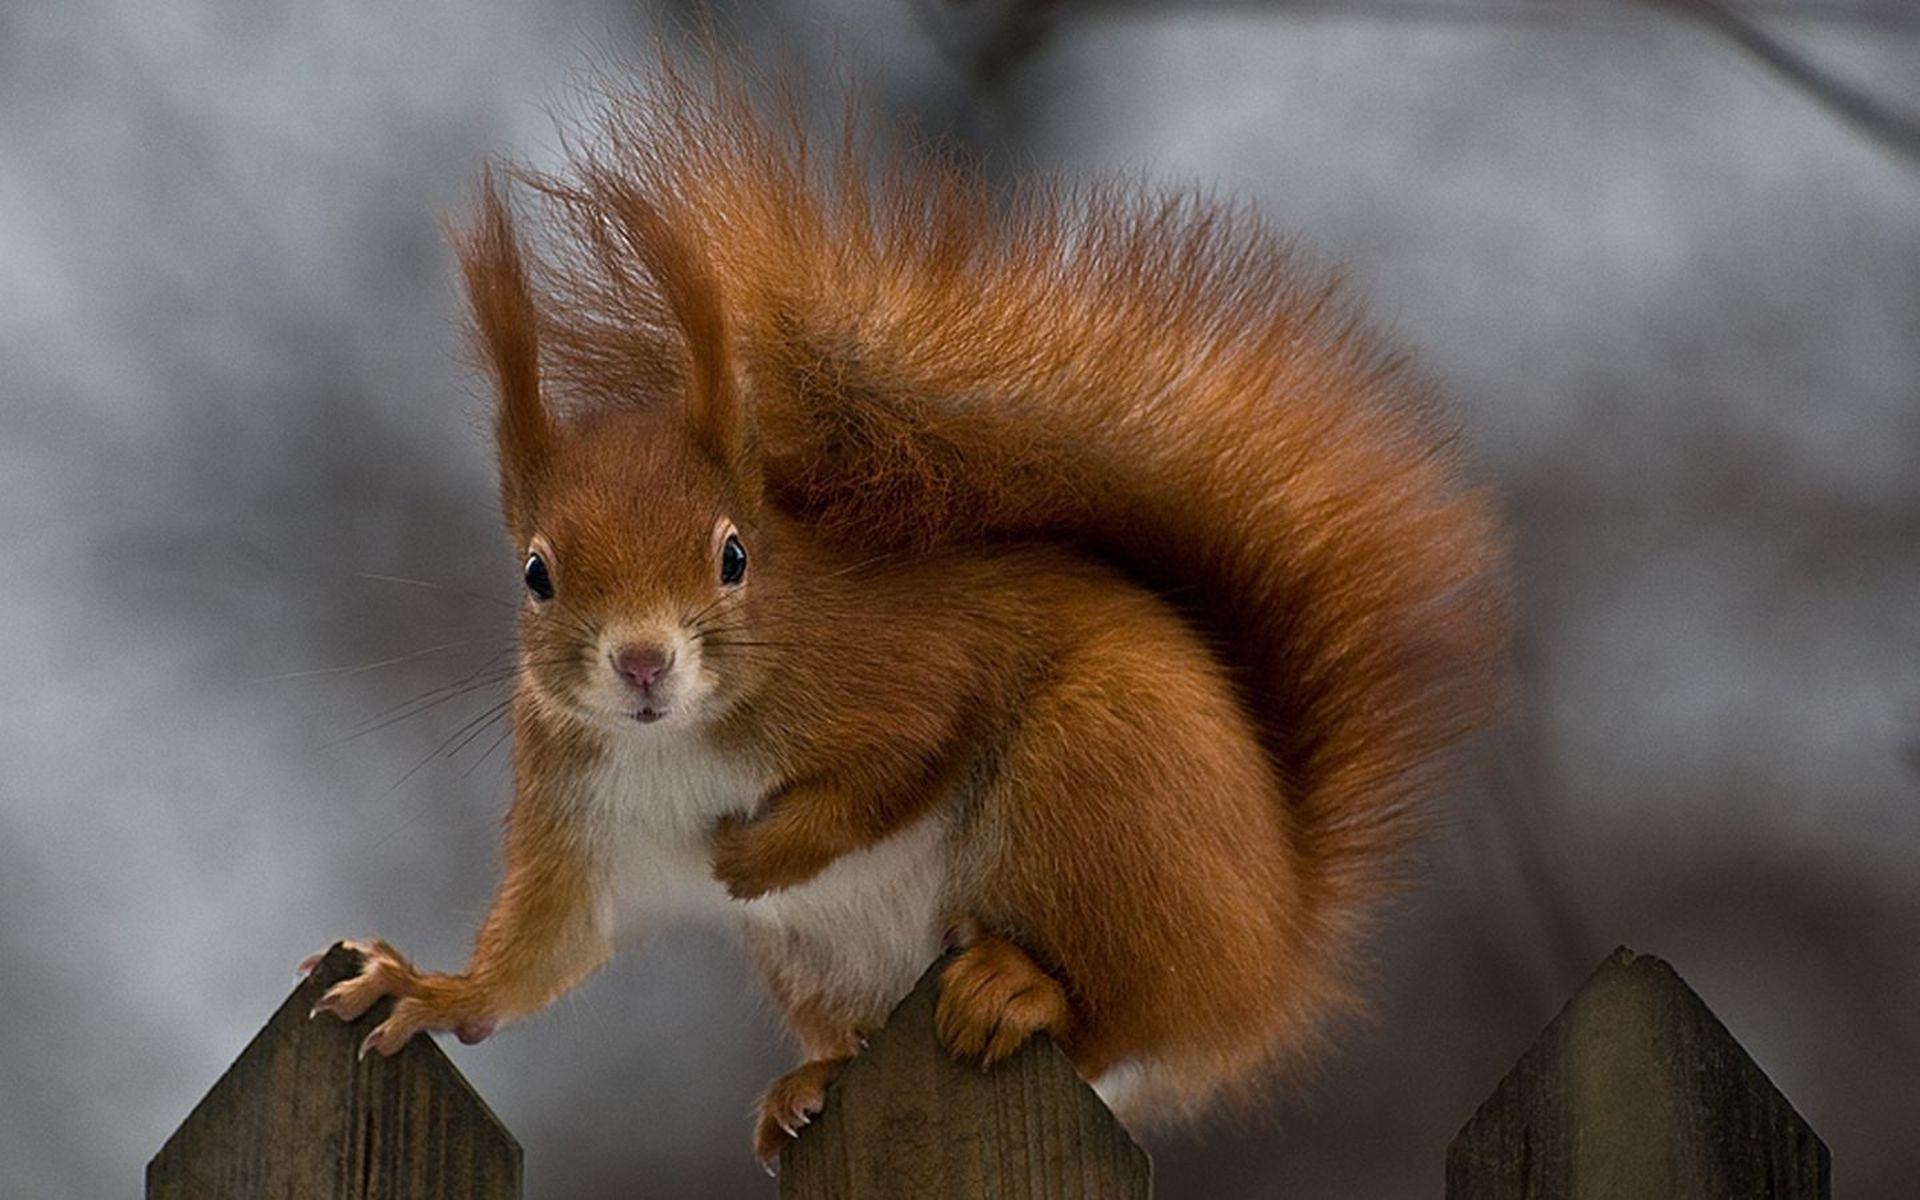 Squirrel Pics Squirrel Wallpapers Squirrel free backgrounds